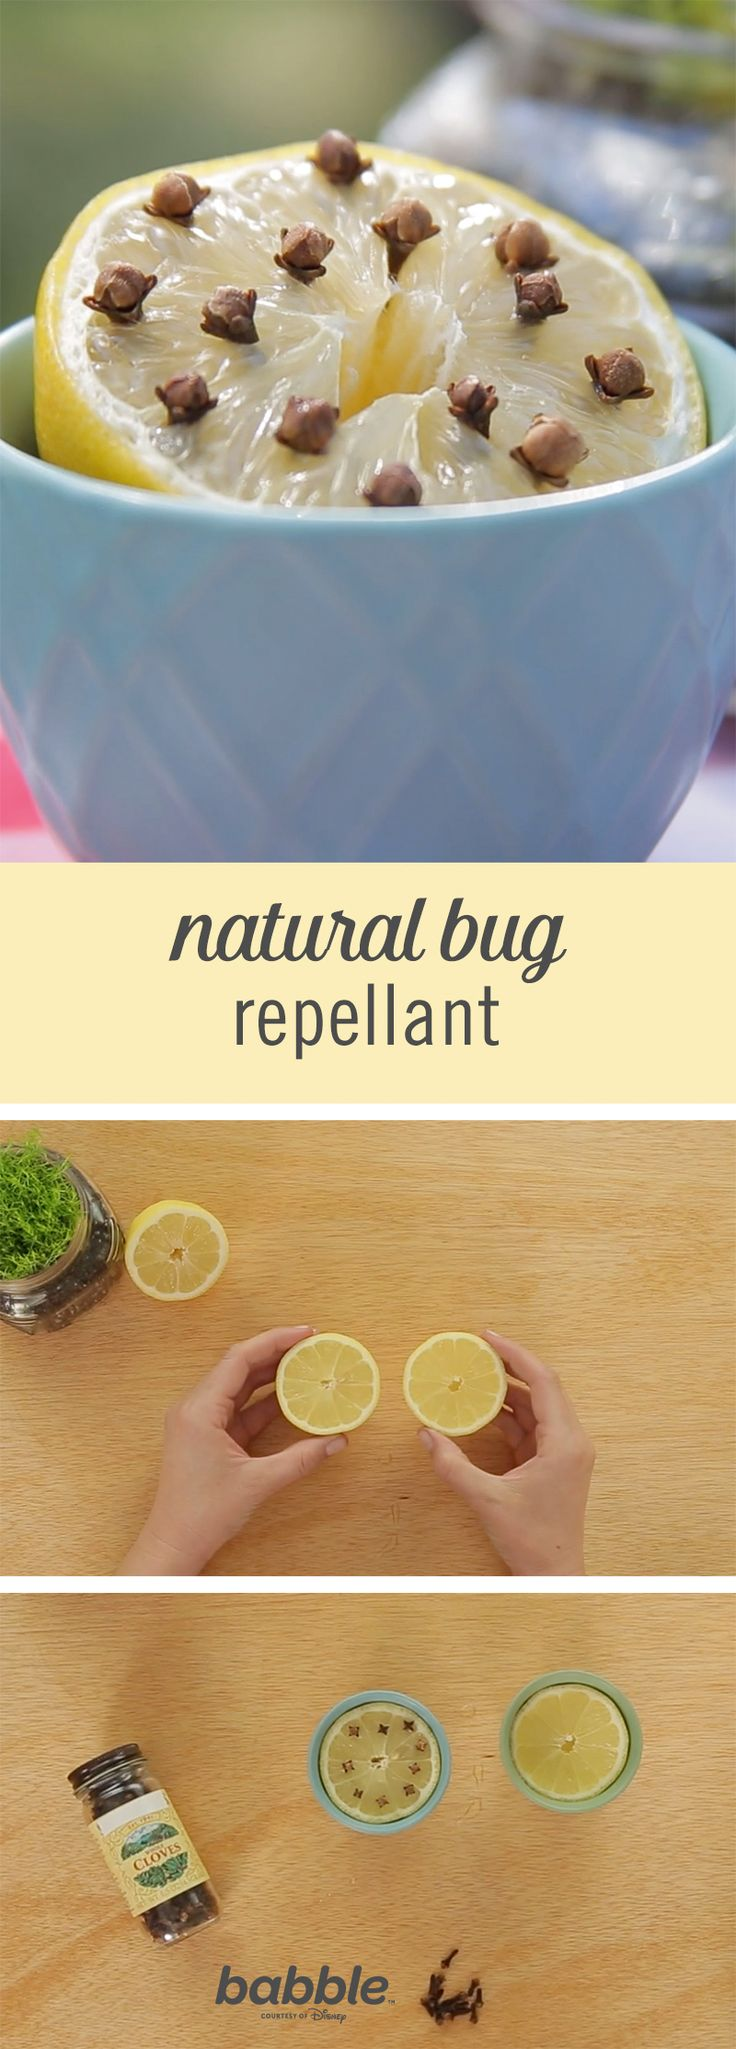 This DIY Natural Bug Repellant will keep you and your food bug-free. You will now be able to enjoy an outdoor meal without a fuss. Grab some lemon and cloves to create this simple summer hack!